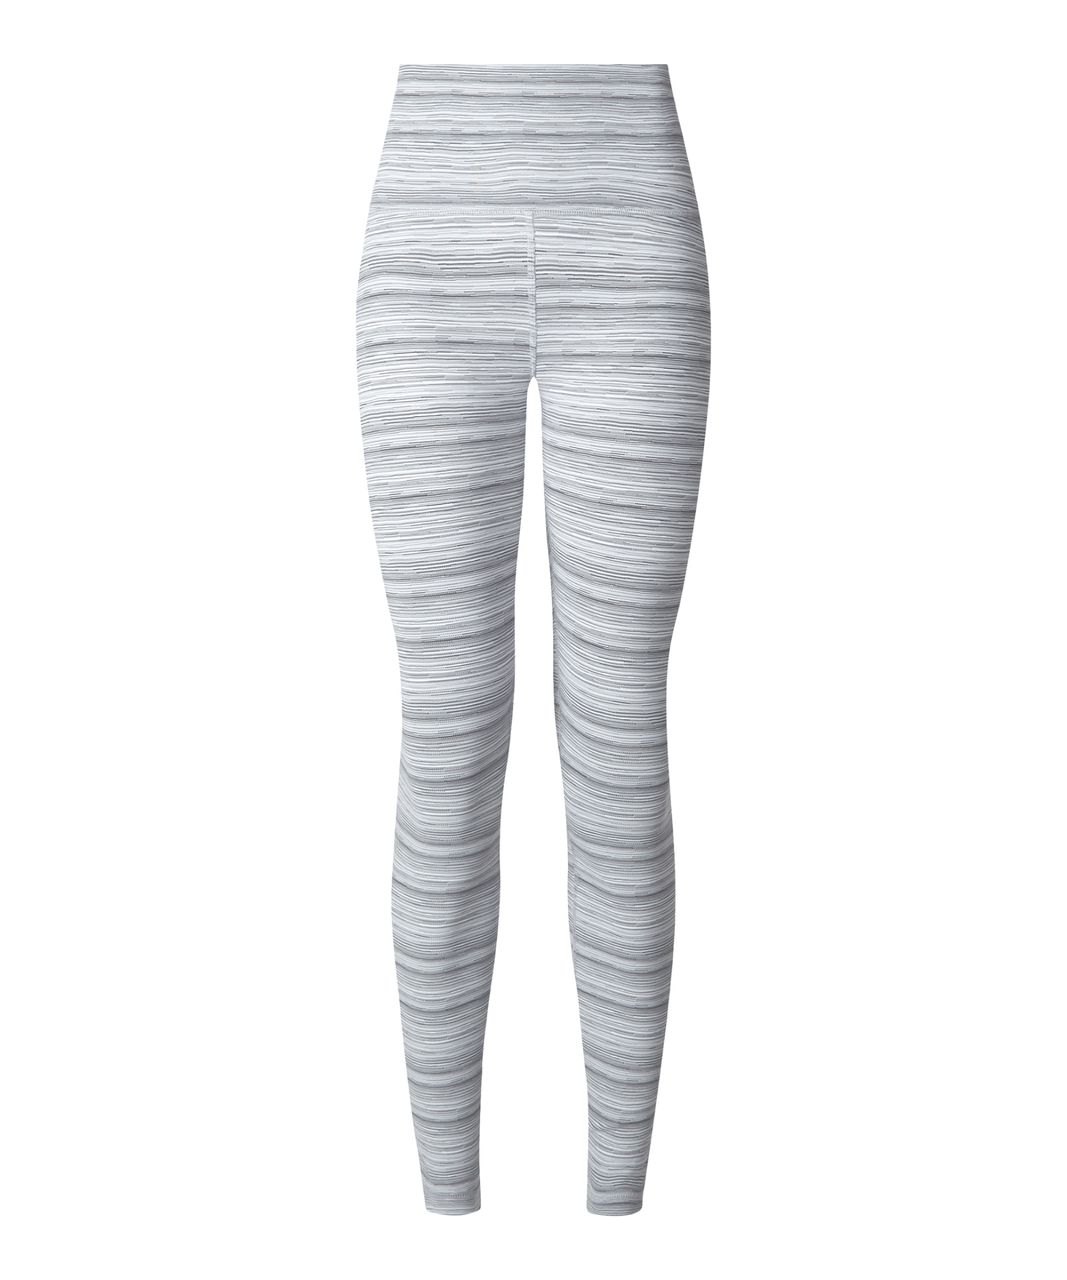 Lululemon High Times Pant - Cyber Stripe White Silver Fox